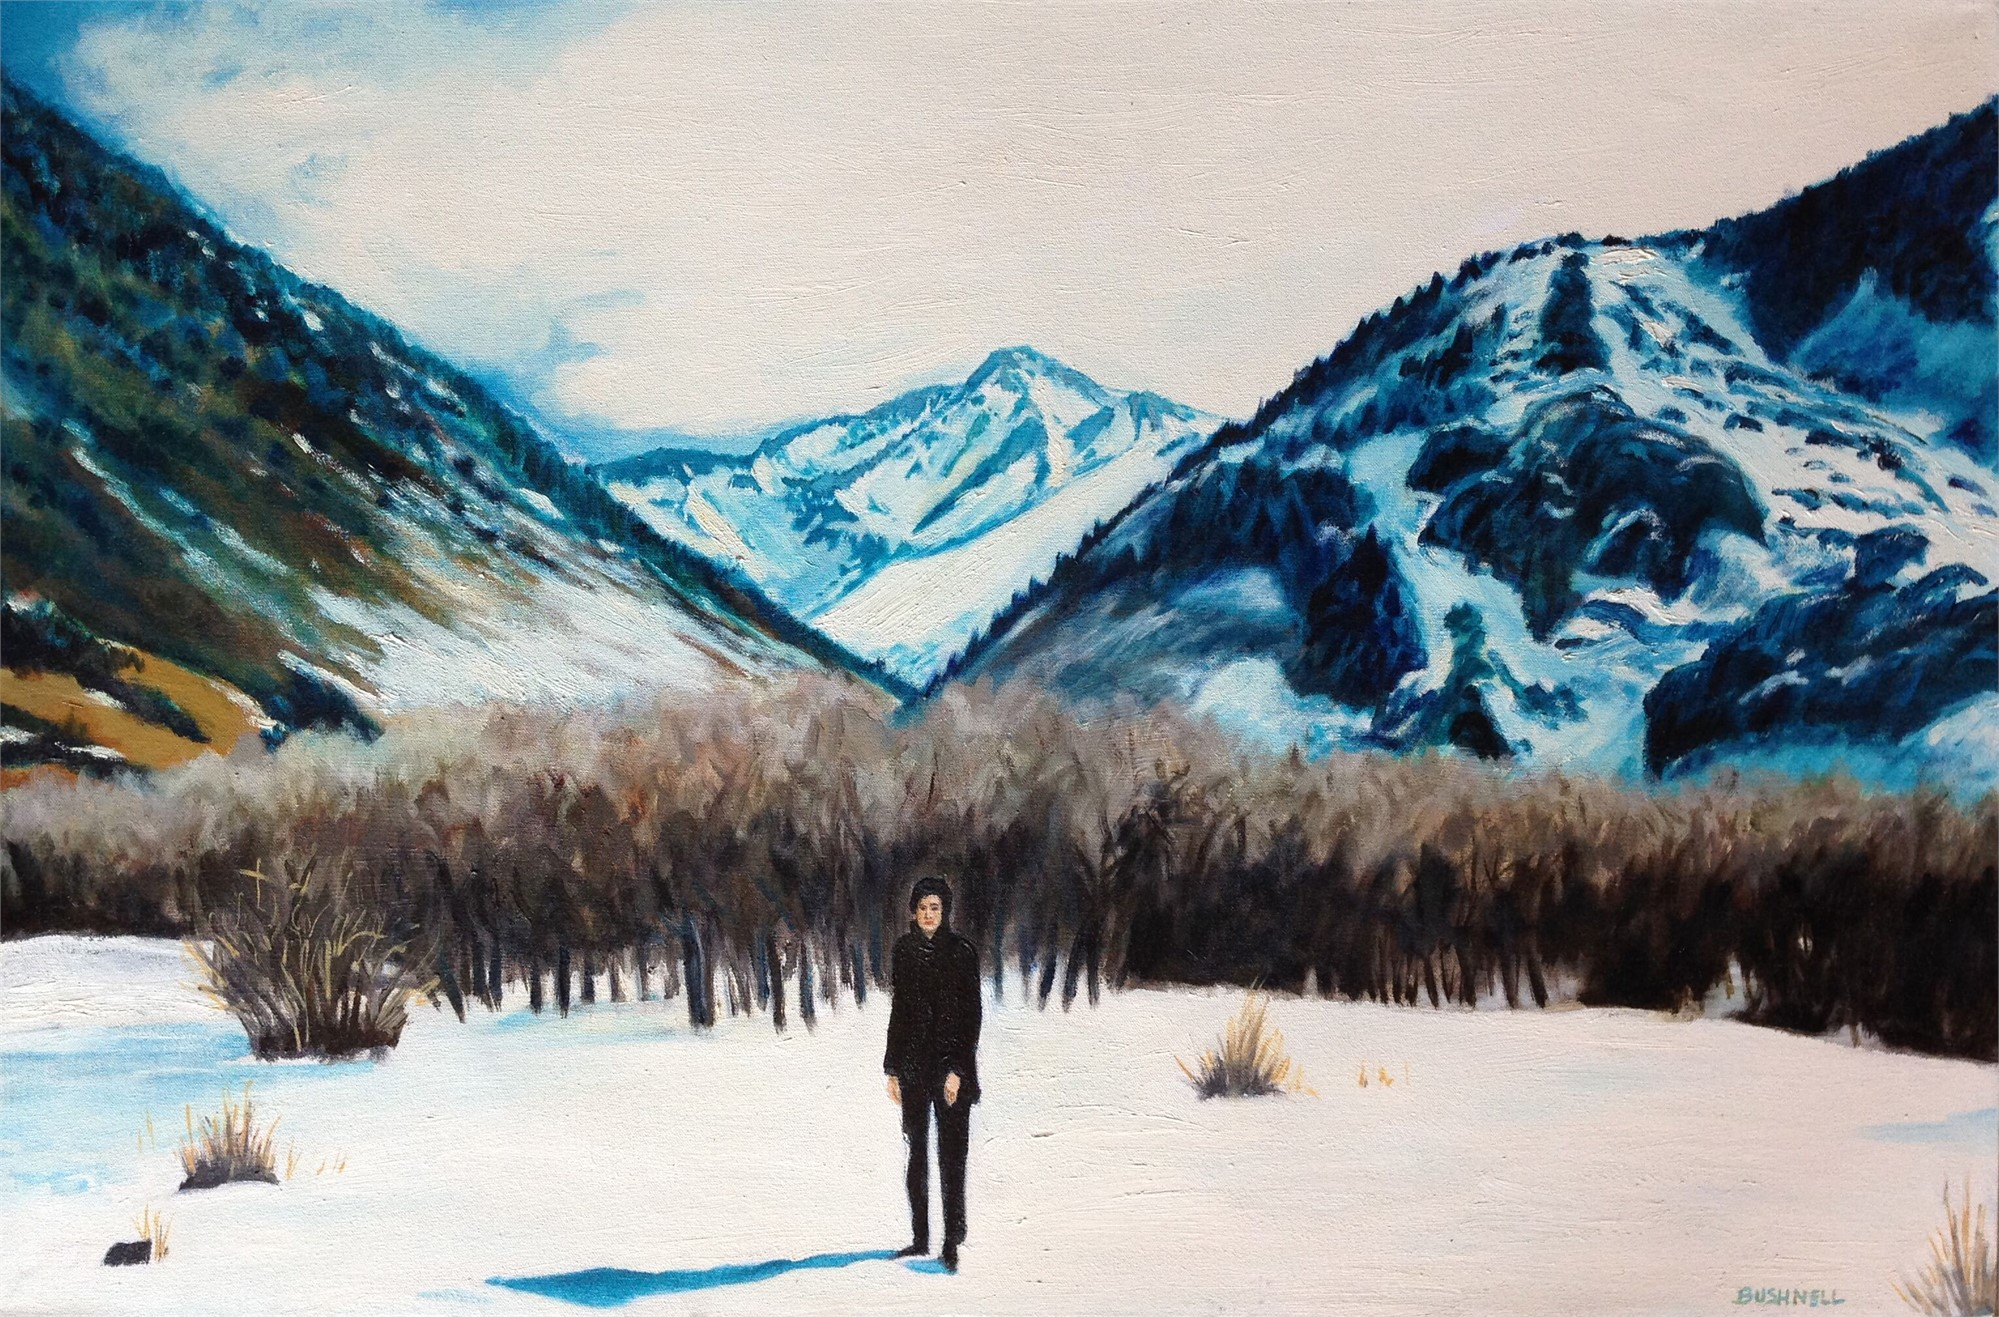 Wanderer in the Snow by Brent Bushnell